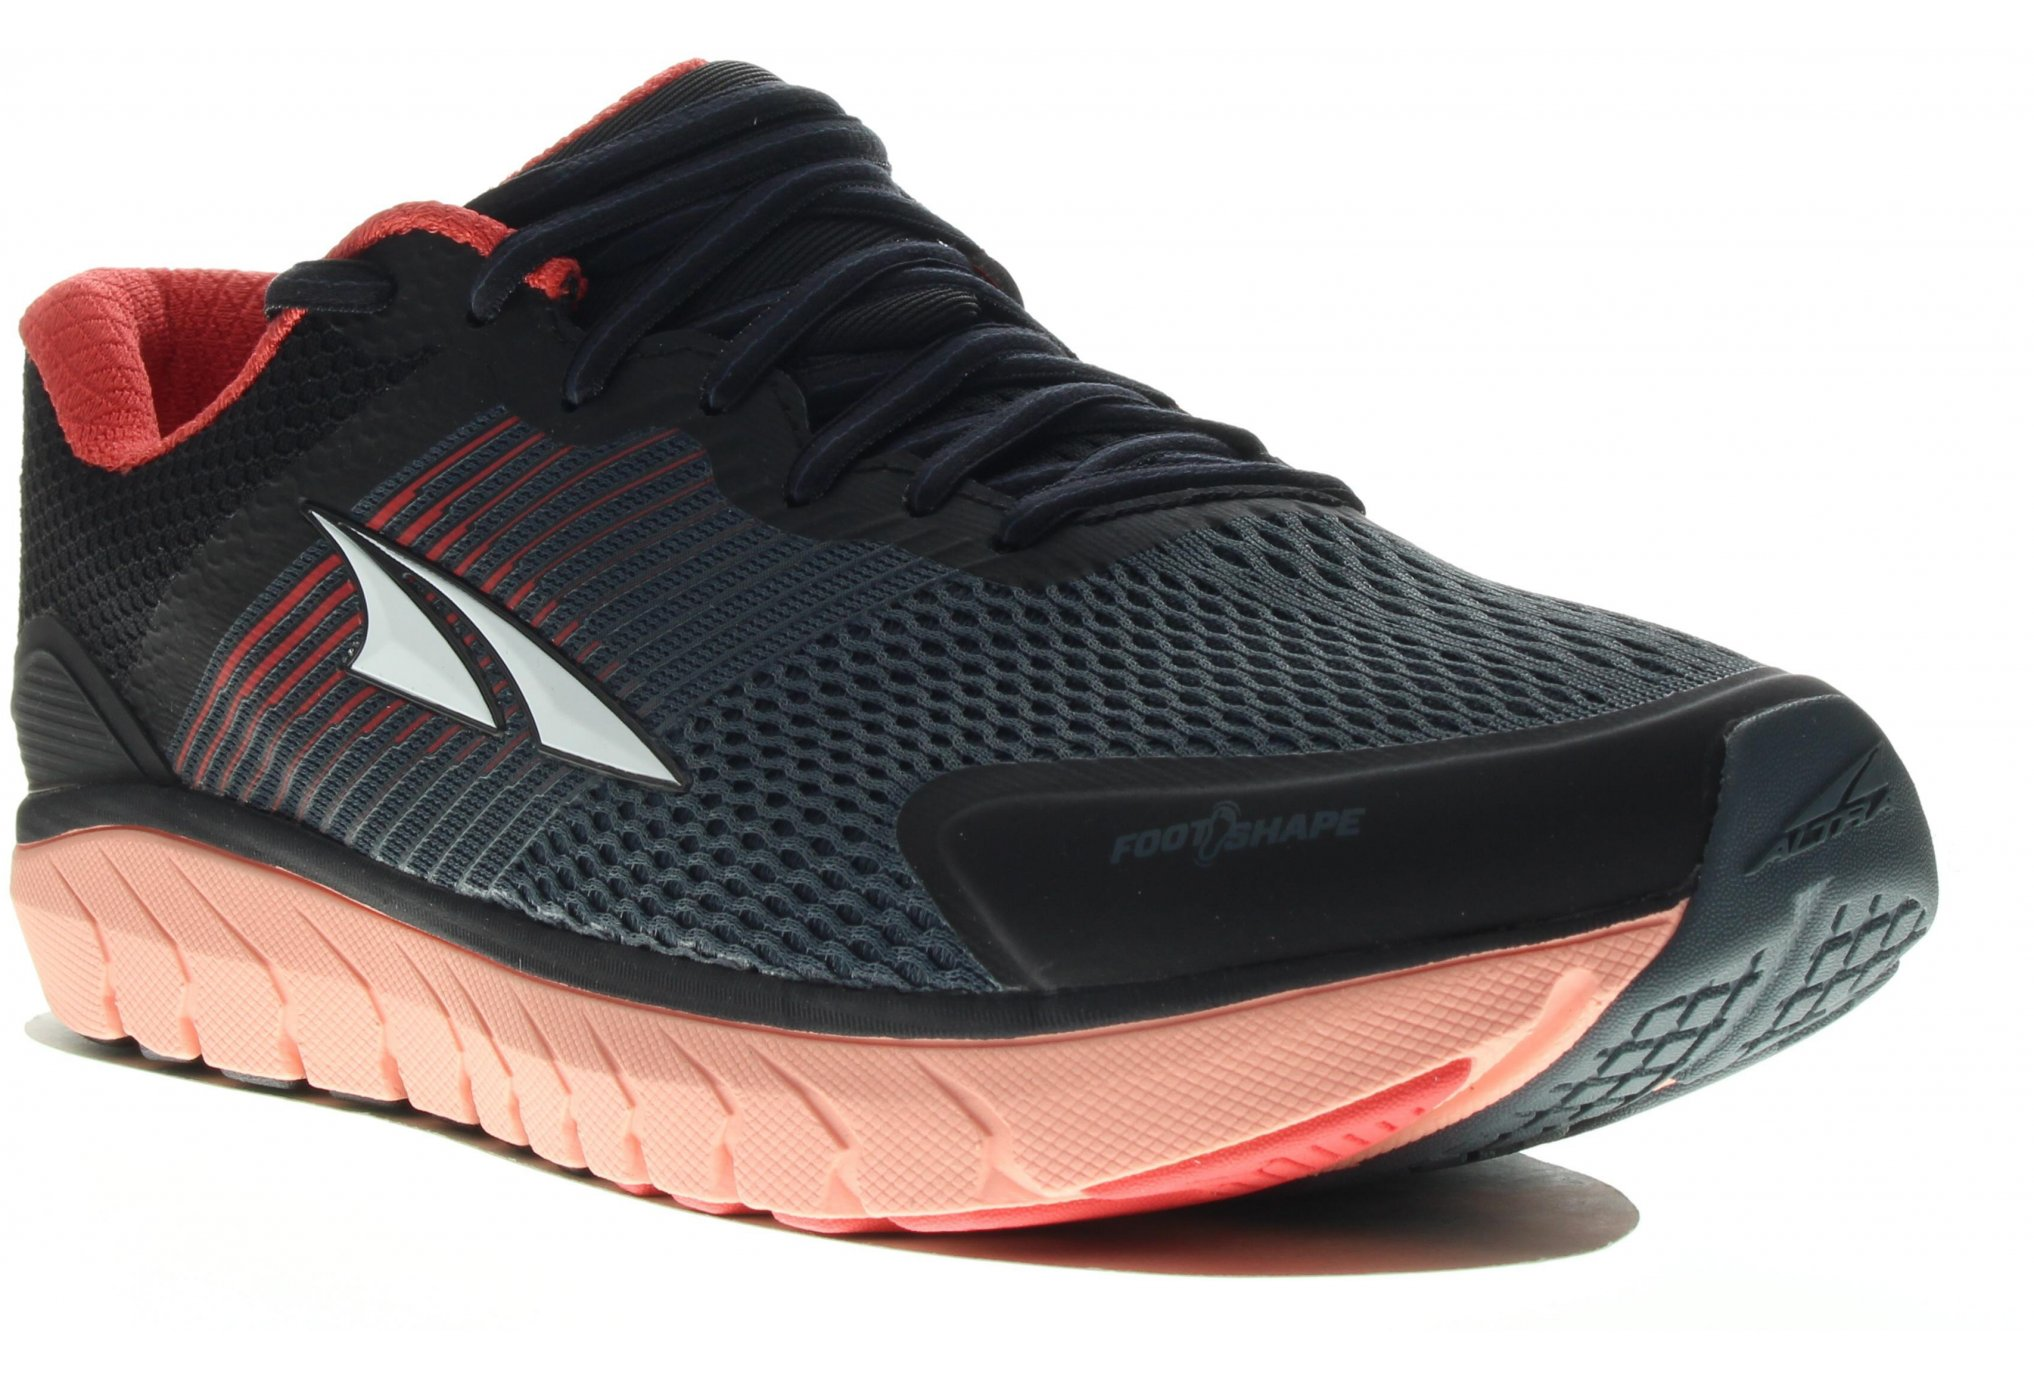 Altra Provision 4 Chaussures running femme